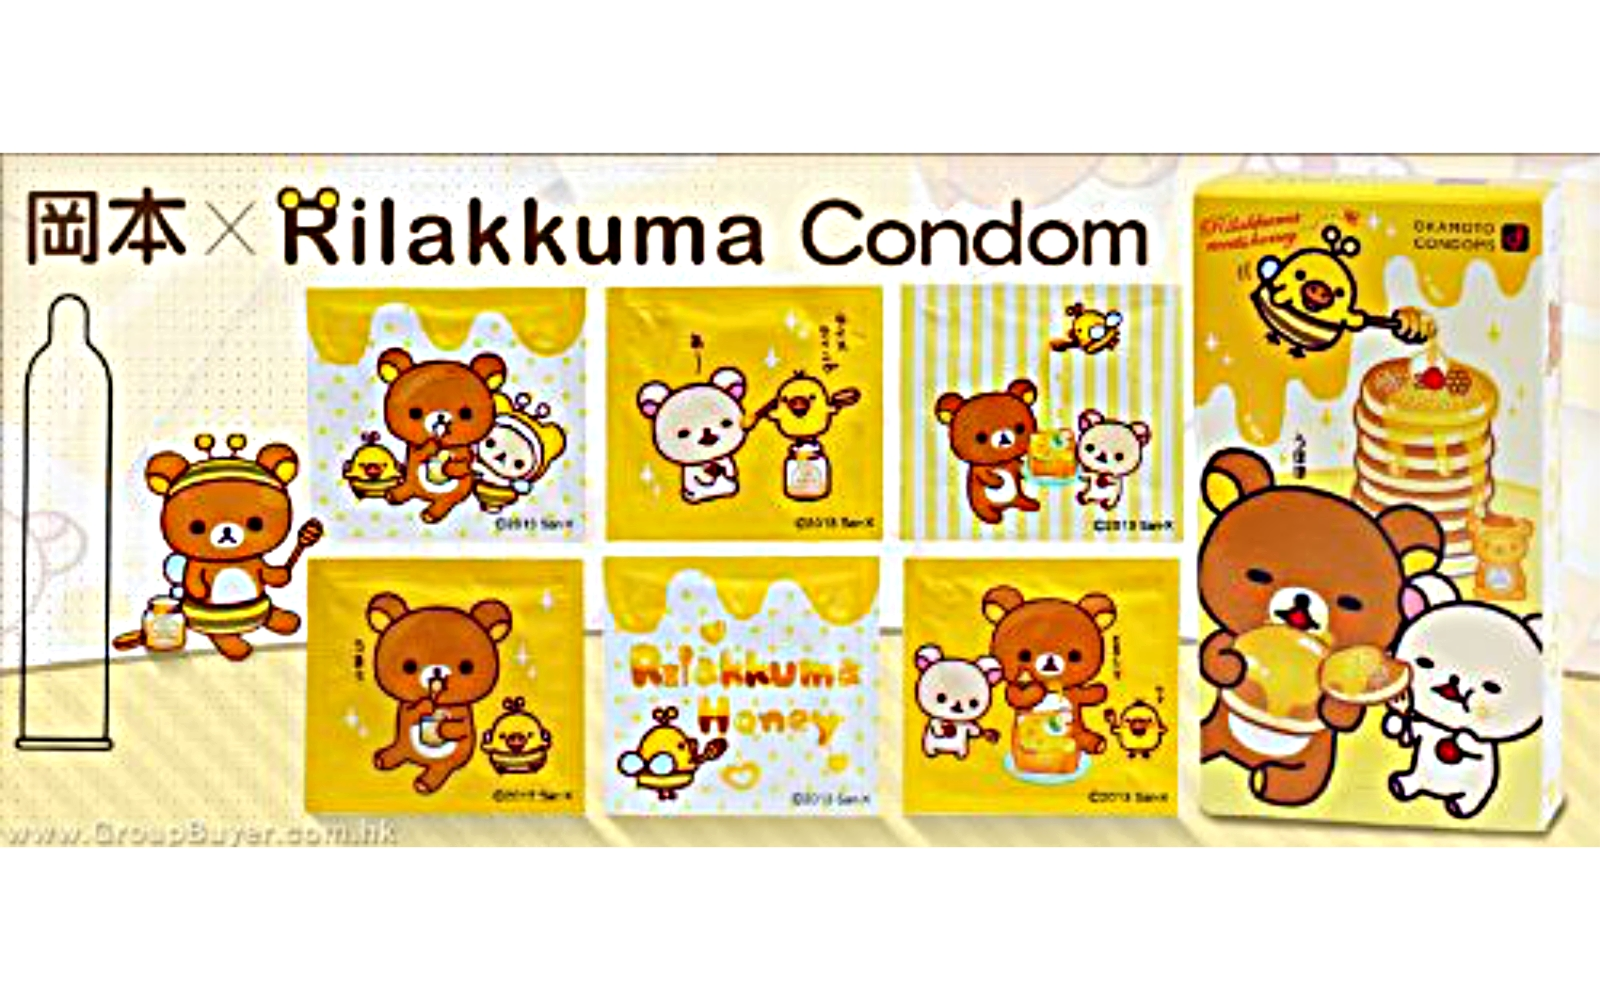 Okamoto Rilakumma Honey Condom Choosing The Best Japanese Condom Brand For You Both